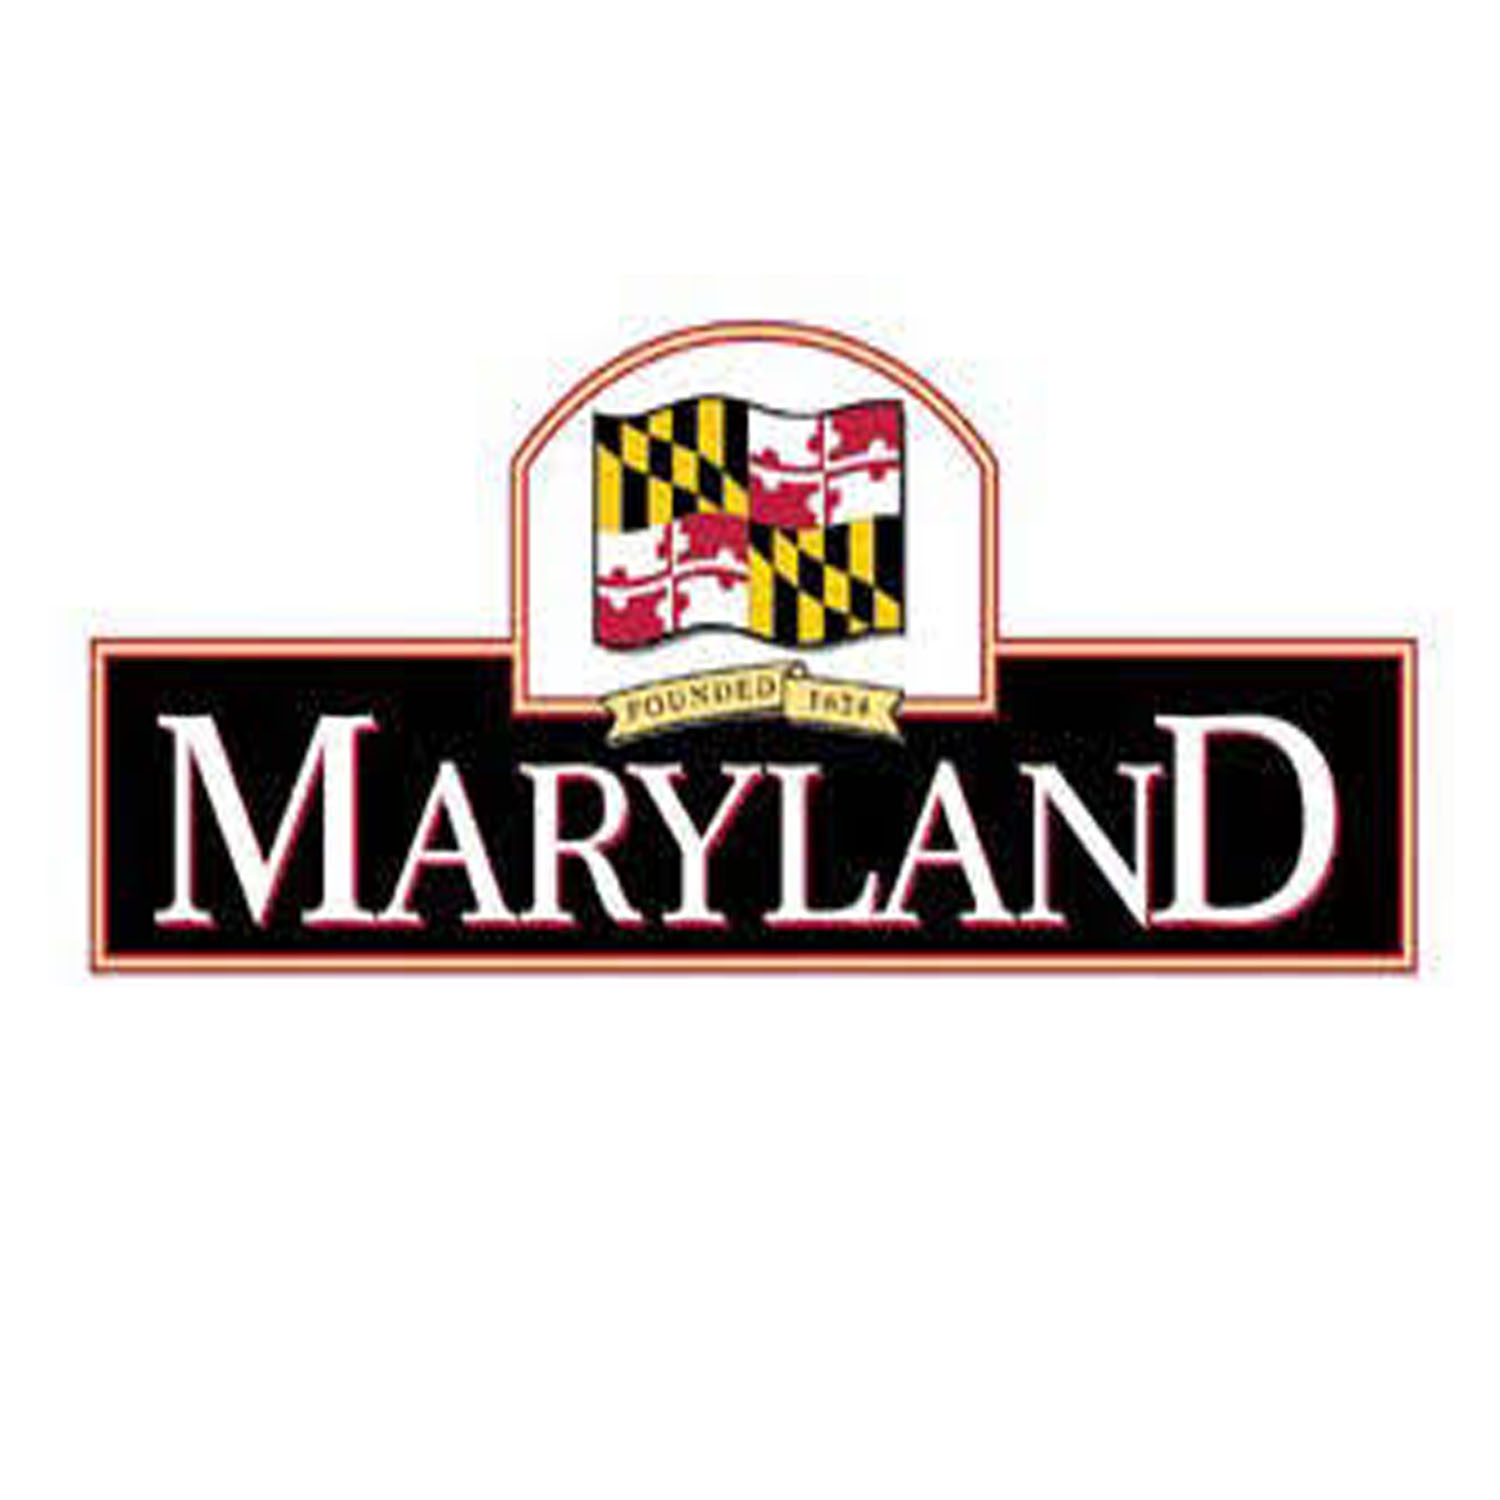 Maryland Small Business Certification